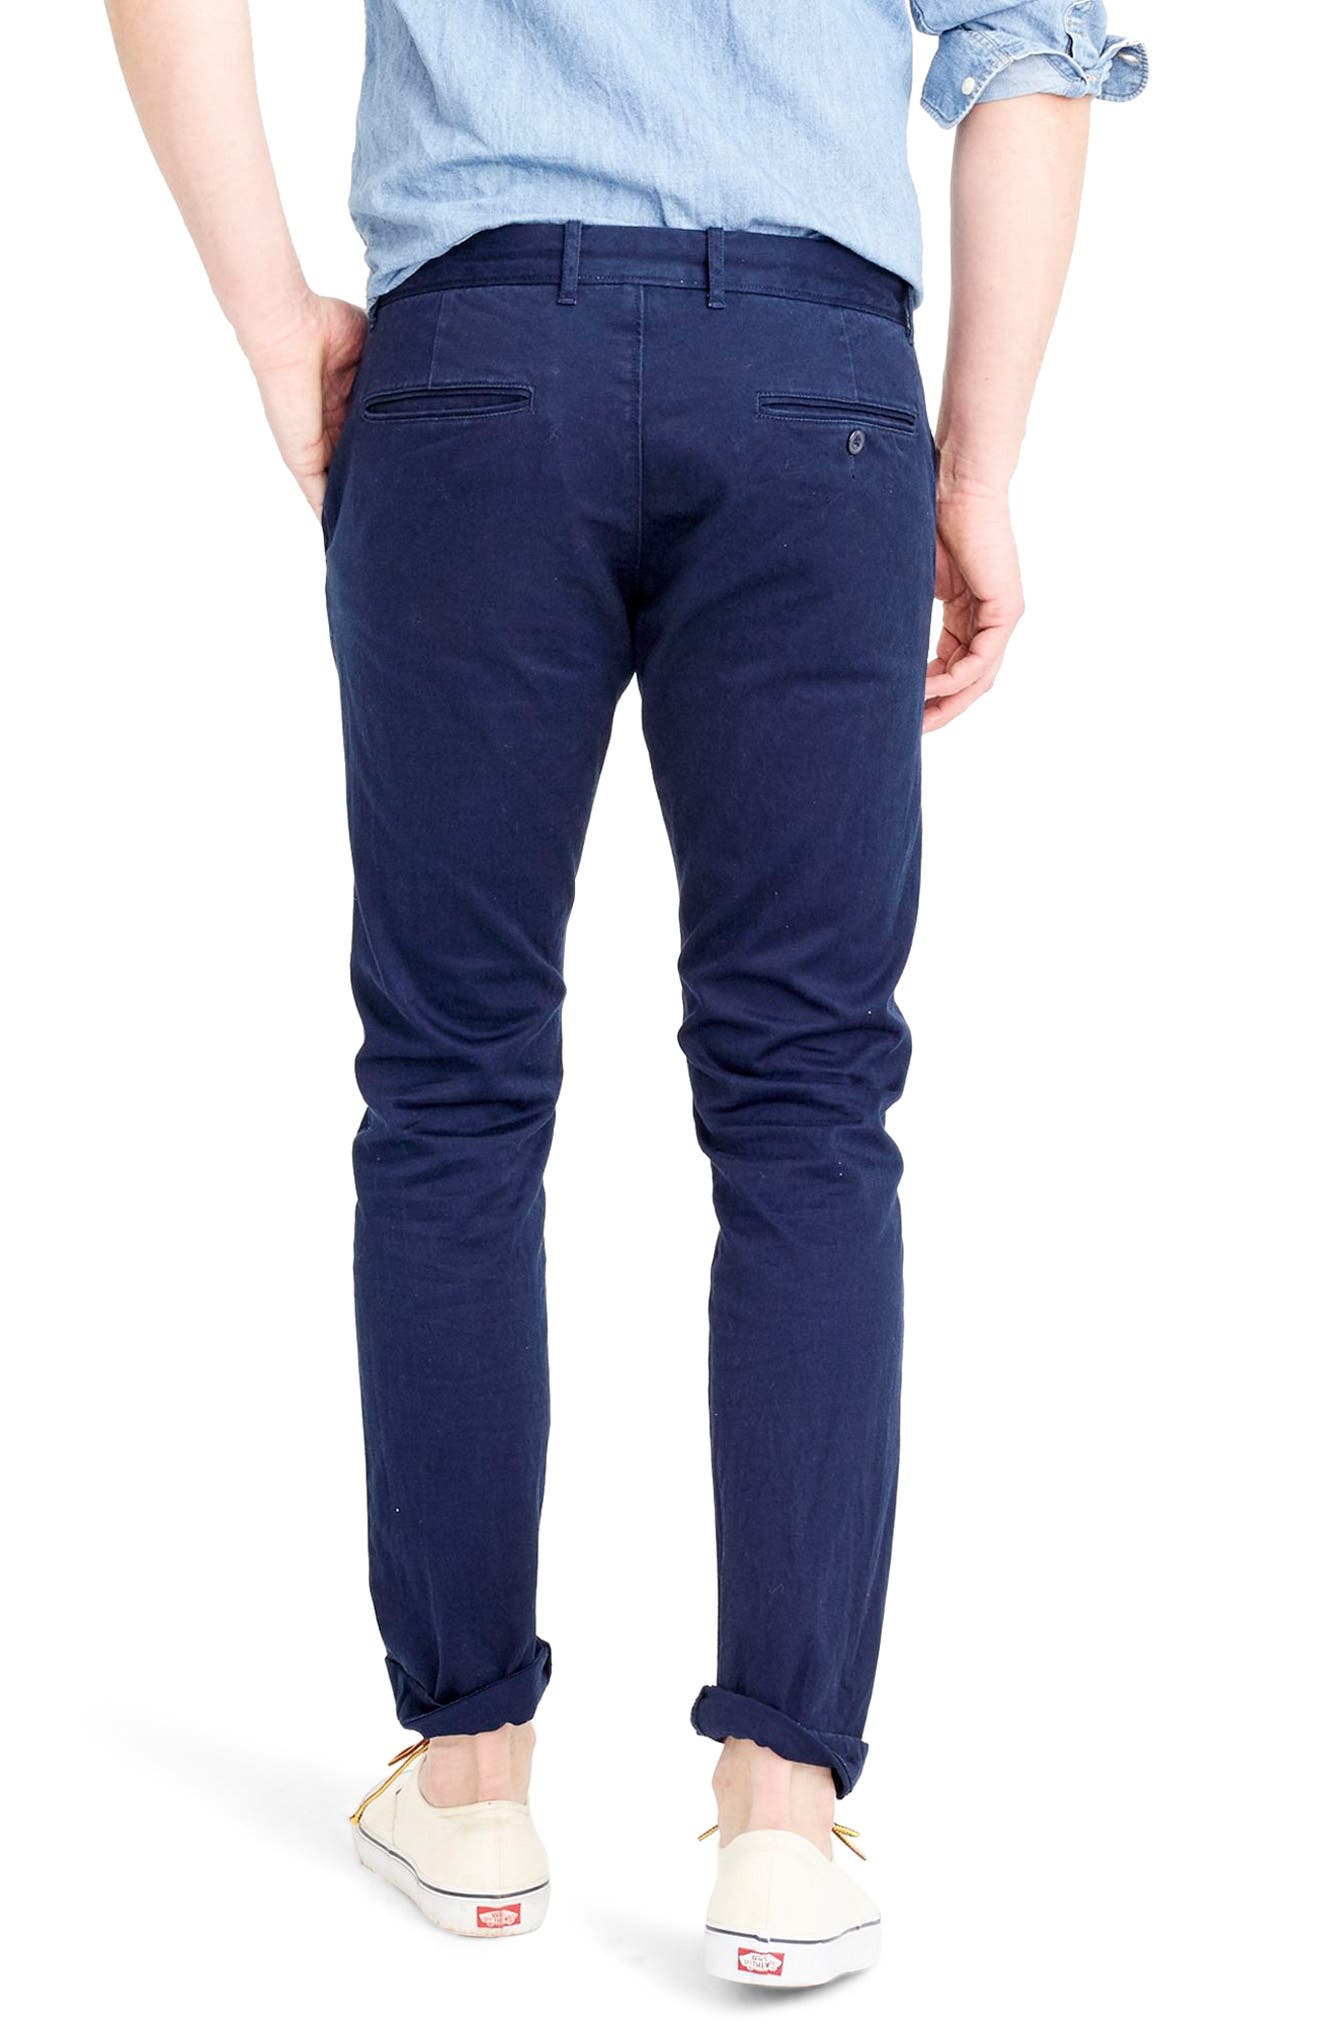 484 Slim Fit Stretch Chino Pants,                             Alternate thumbnail 20, color,